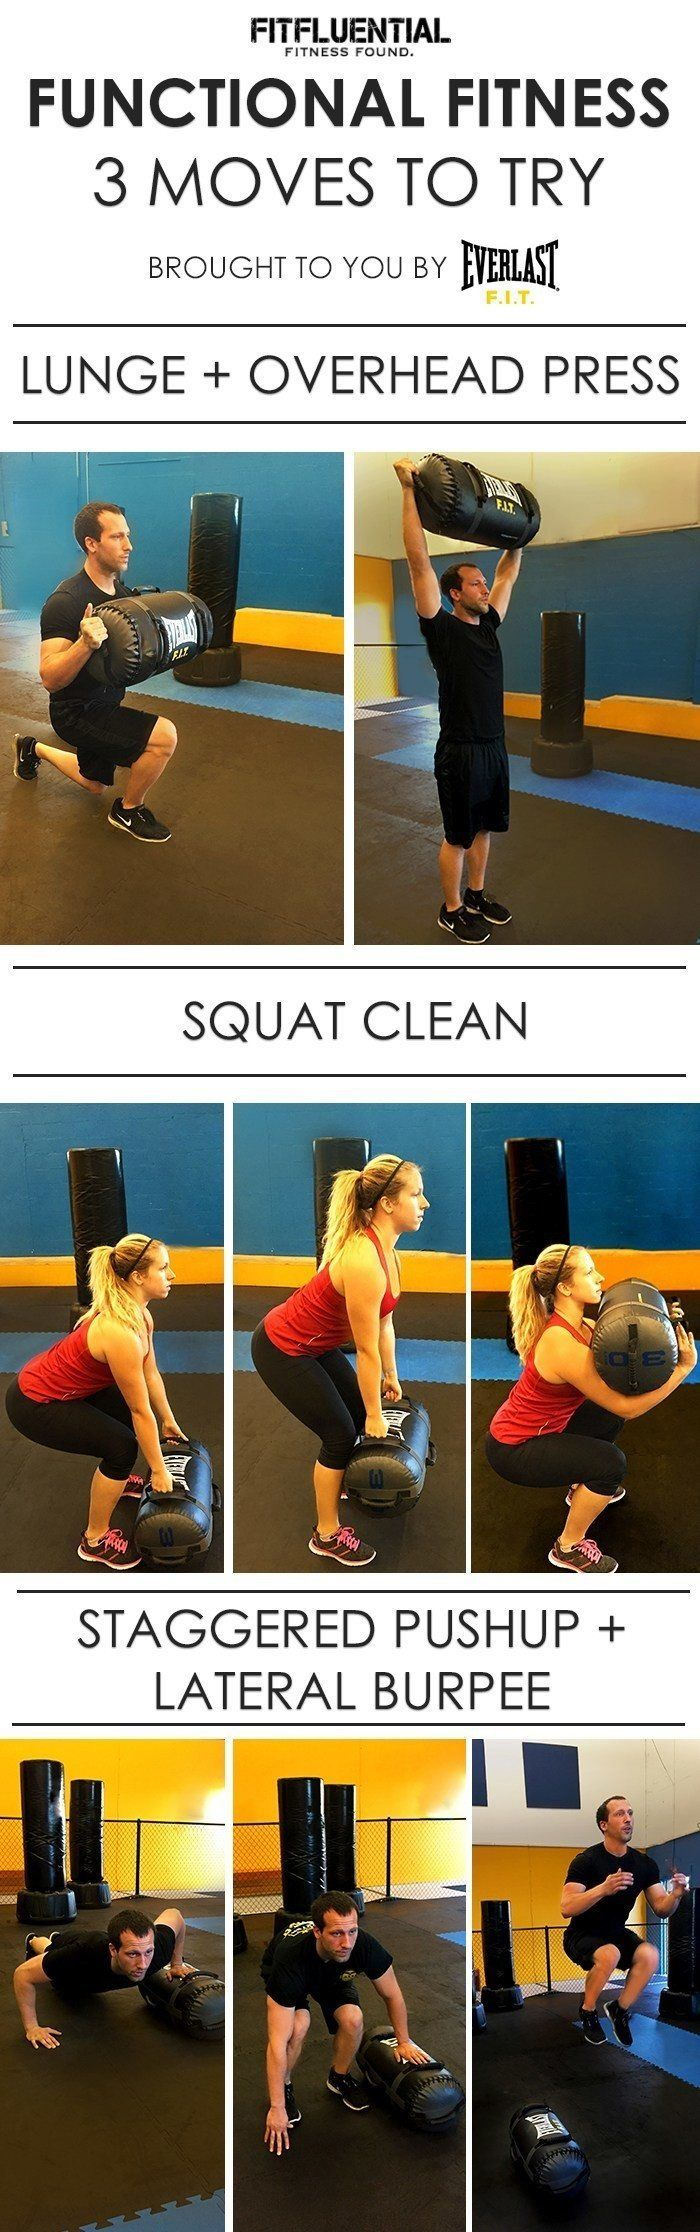 Functional Fitness is a big buzzword right now, and with good reason. It helps you do your daily activities, but better. Work out with Everlast FIT and incorporate these 3 functional fitness moves into your routine.